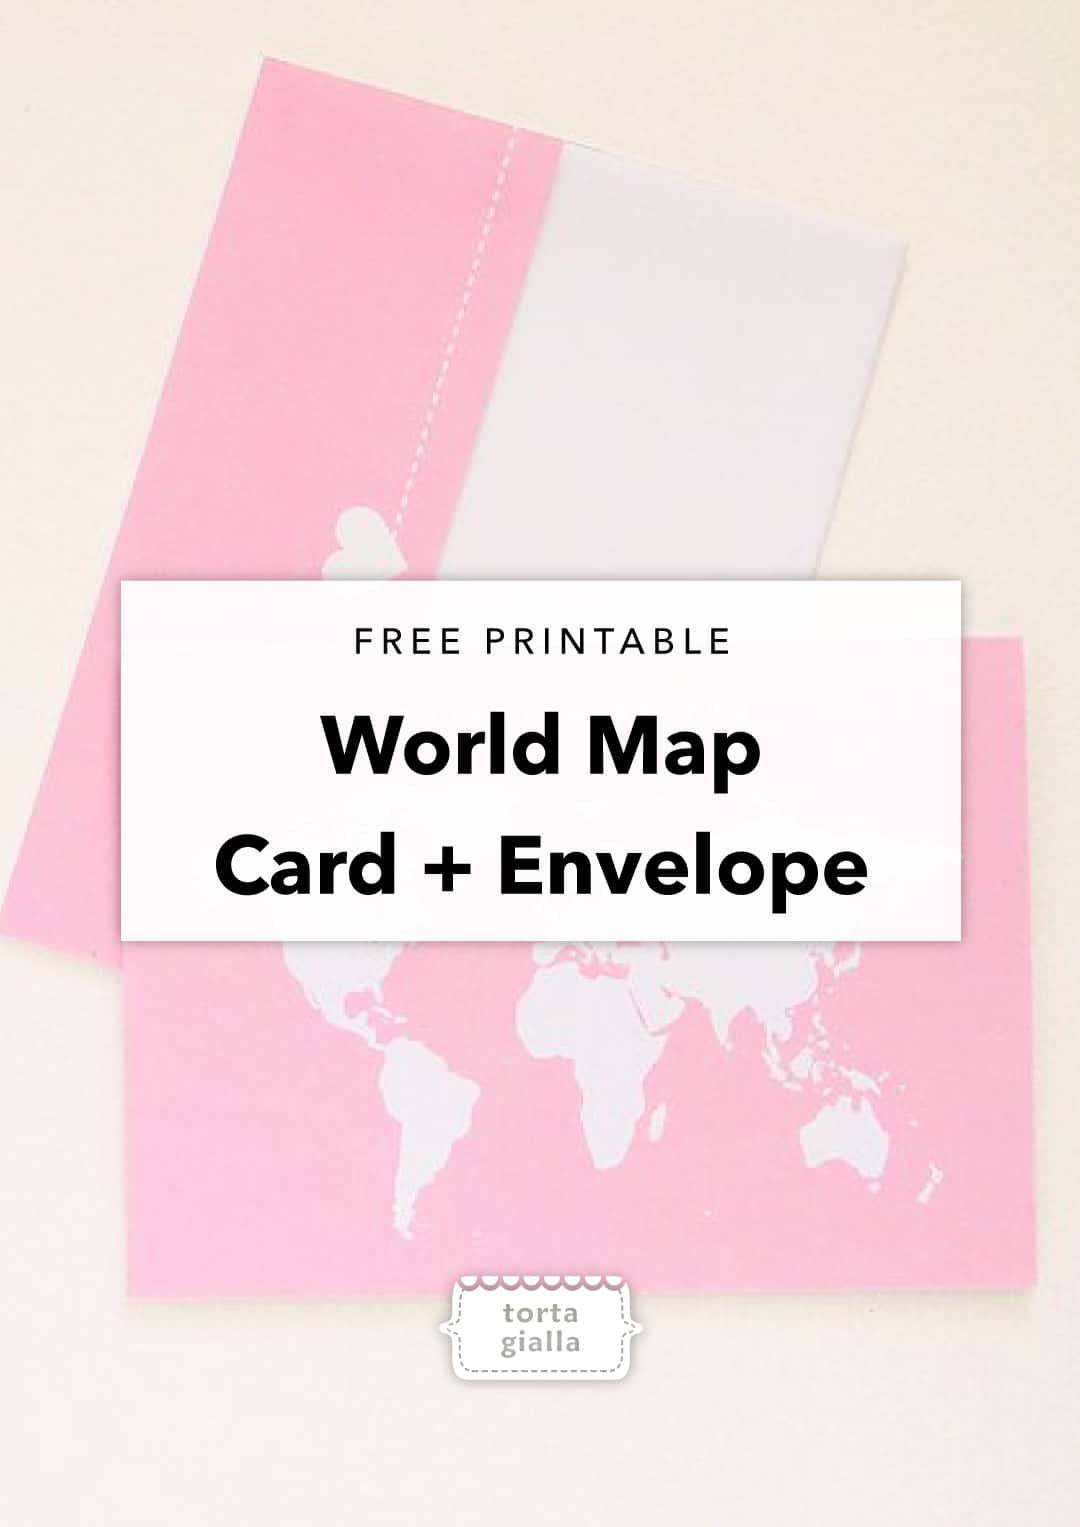 photo relating to Printable Thinking of You Card called Cost-free Printable Pondering of By yourself Global Map Card and Envelope